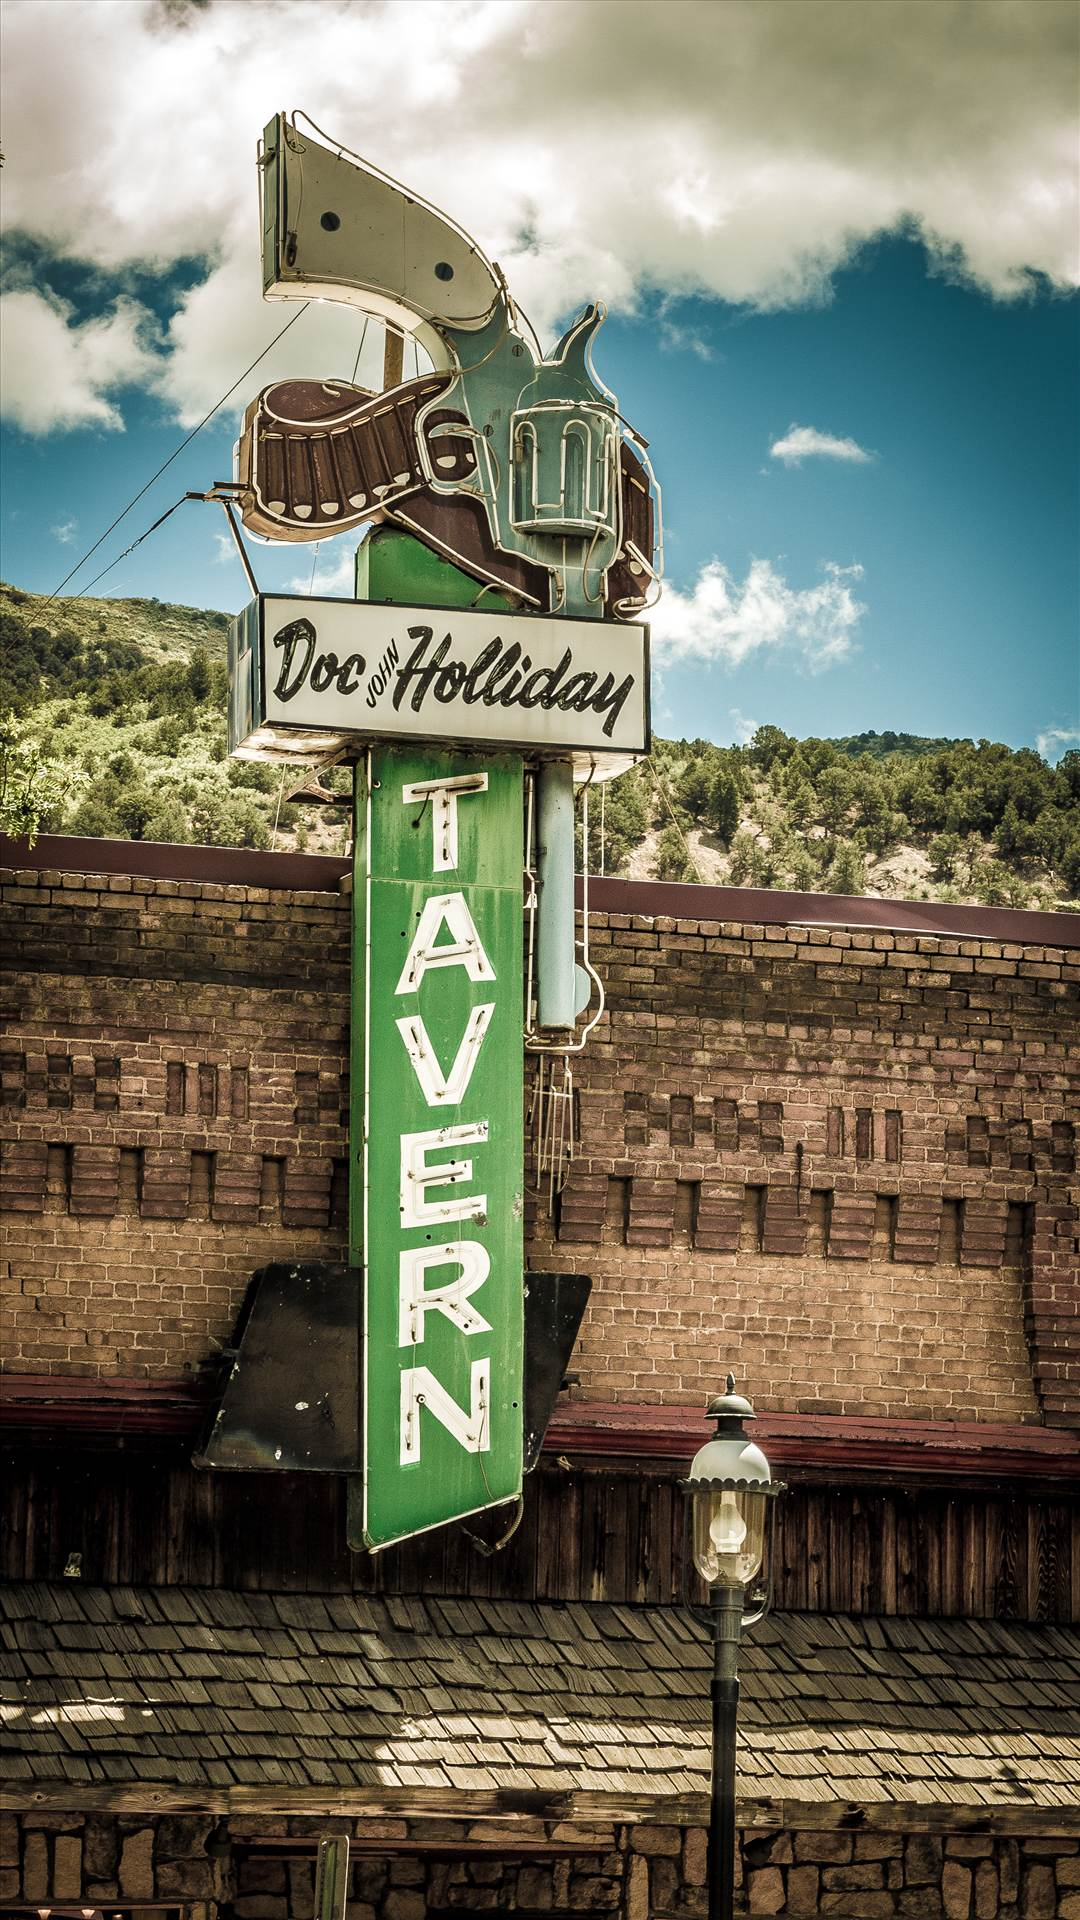 Doc Holliday Tavern in Glenwood Springs - The famous sign for the Doc Holliday Tavern in Glenwood Springs by D Scott Smith